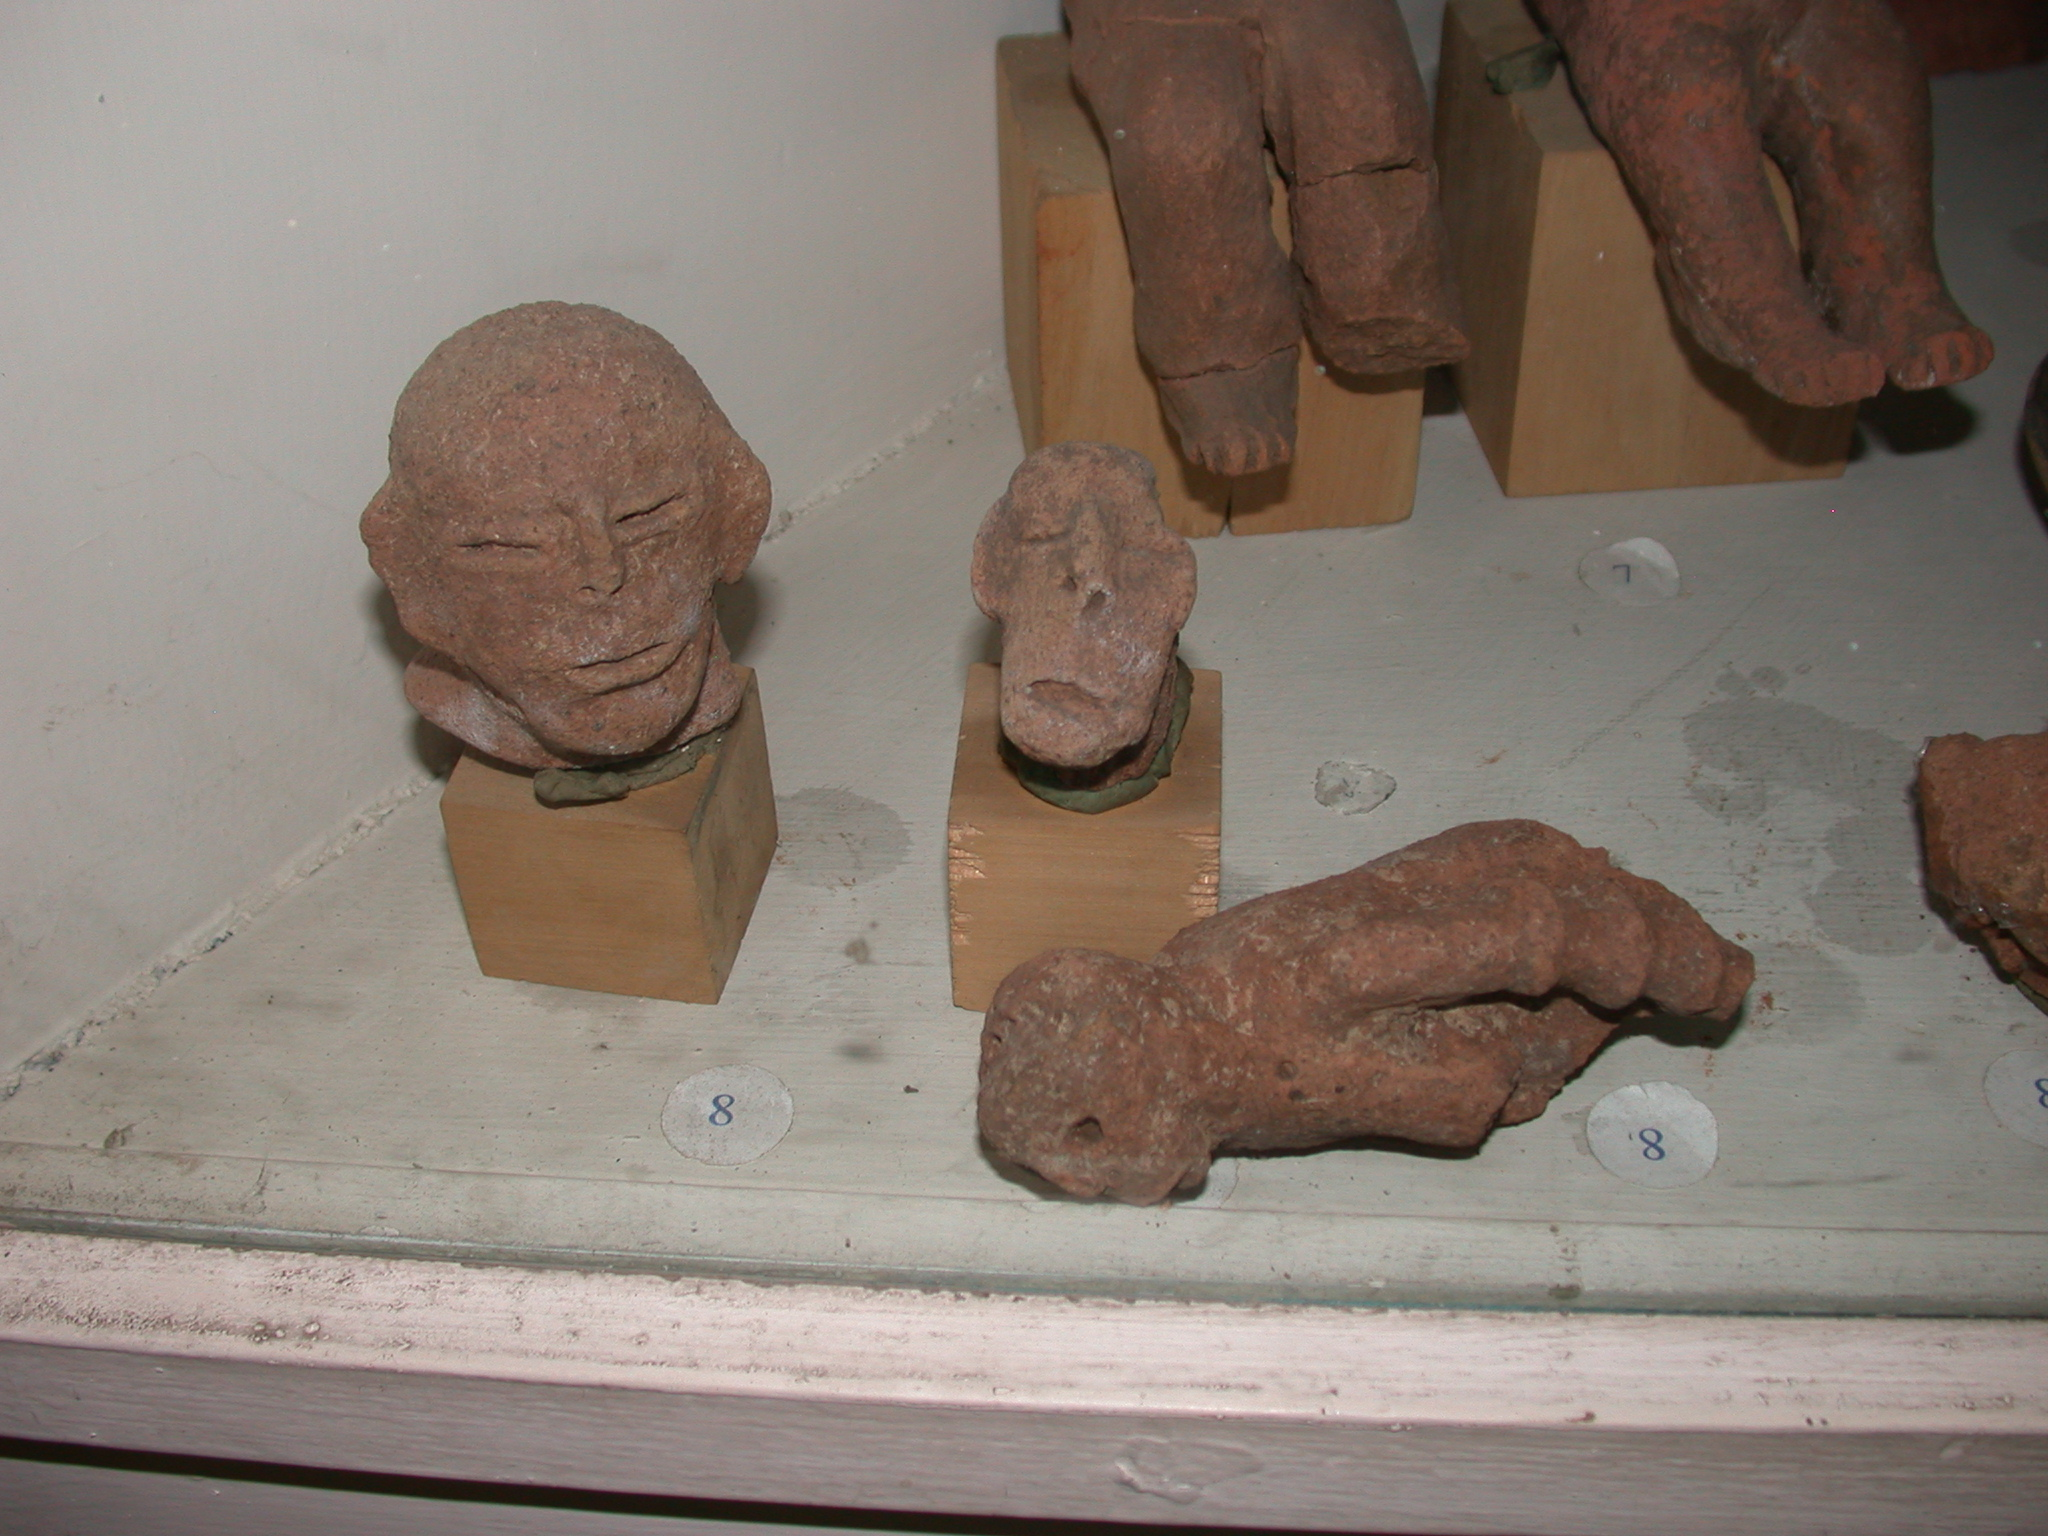 Buff Earthenware Figurines From 2nd Half of 1st Millenium BCE in Hawlti, Tigrai, Now Located at National Museum, Addis Ababa, Ethiopia